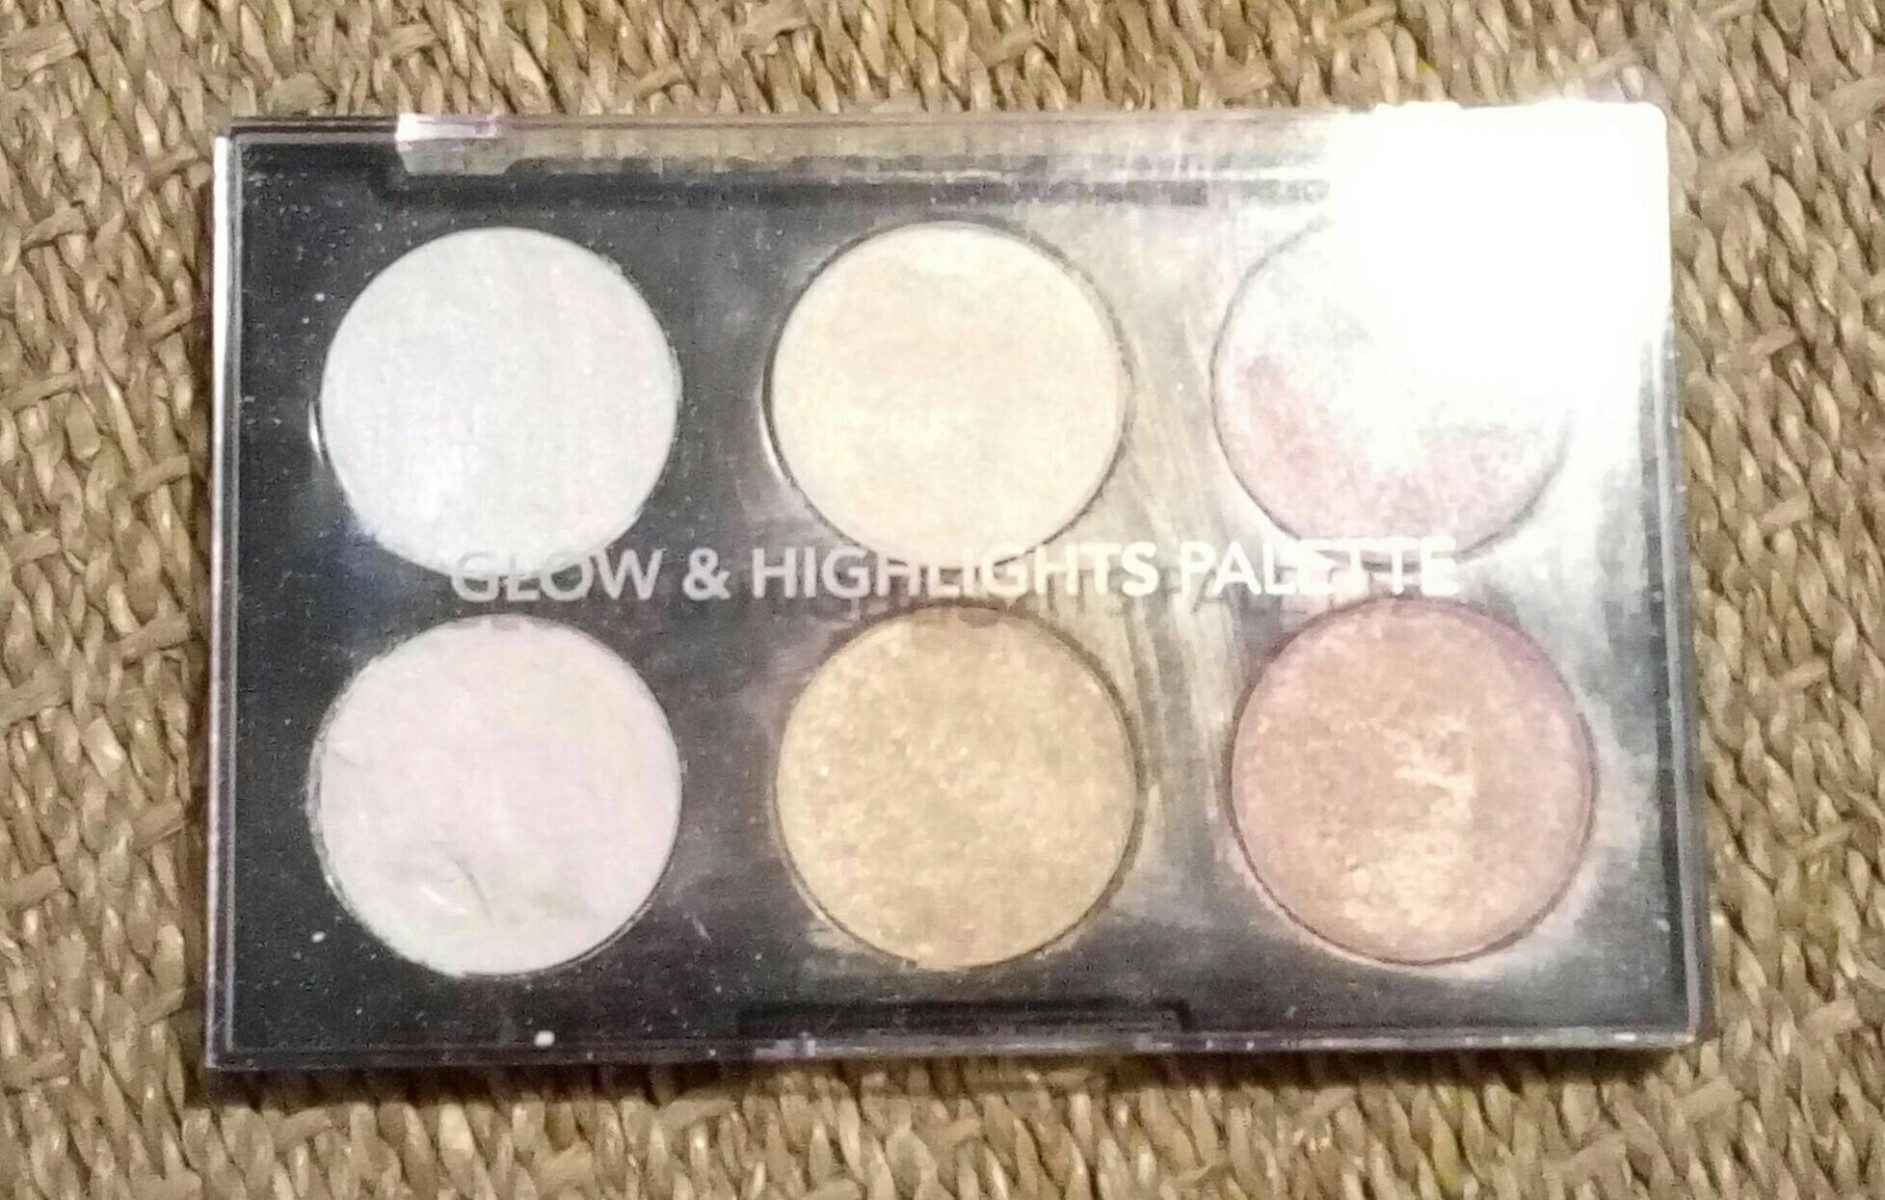 Glow & Highlights Palette - Product - fr